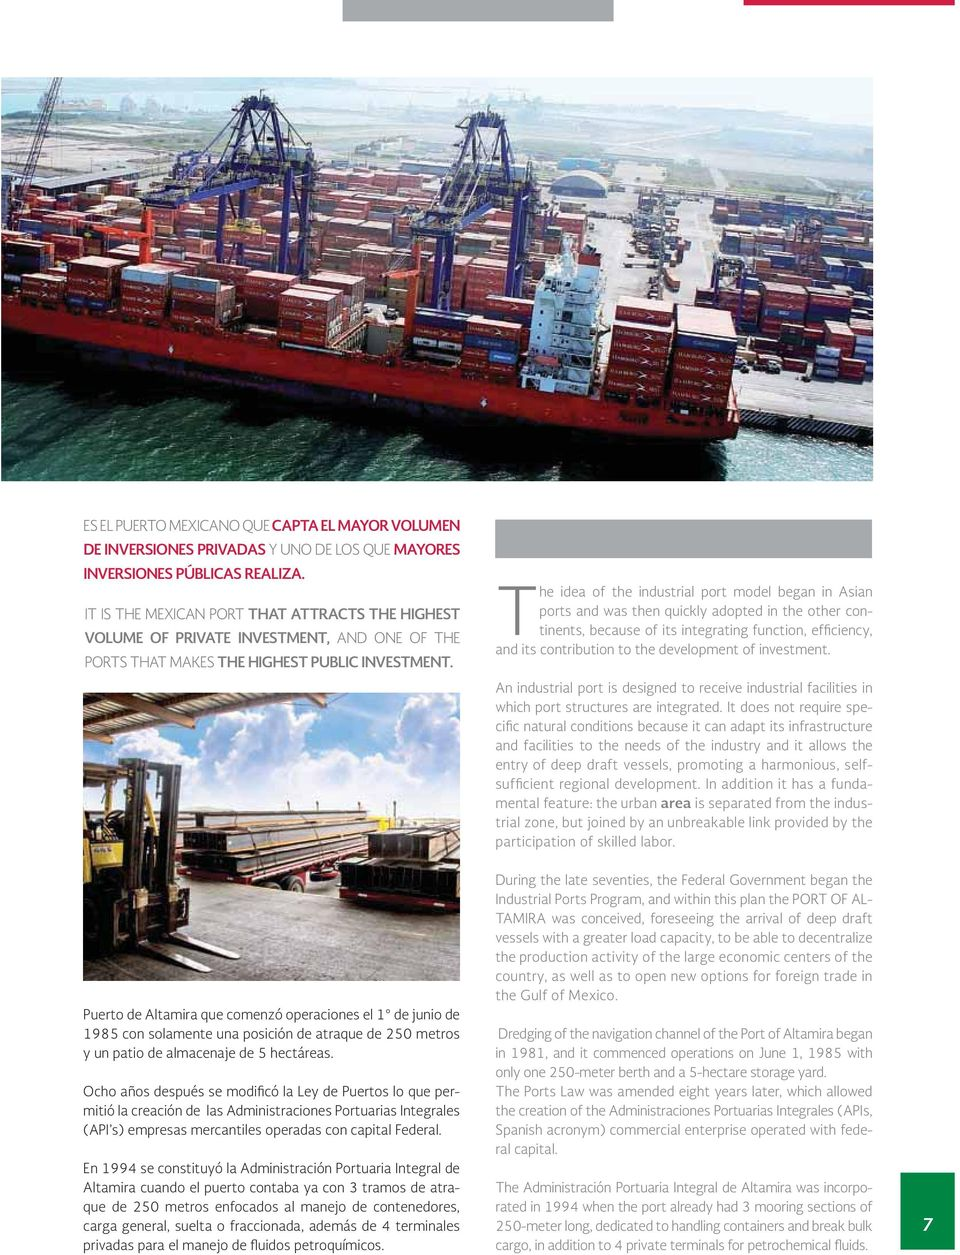 The idea of the industrial port model began in Asian ports and was then quickly adopted in the other continents, because of its integrating function, efficiency, and its contribution to the